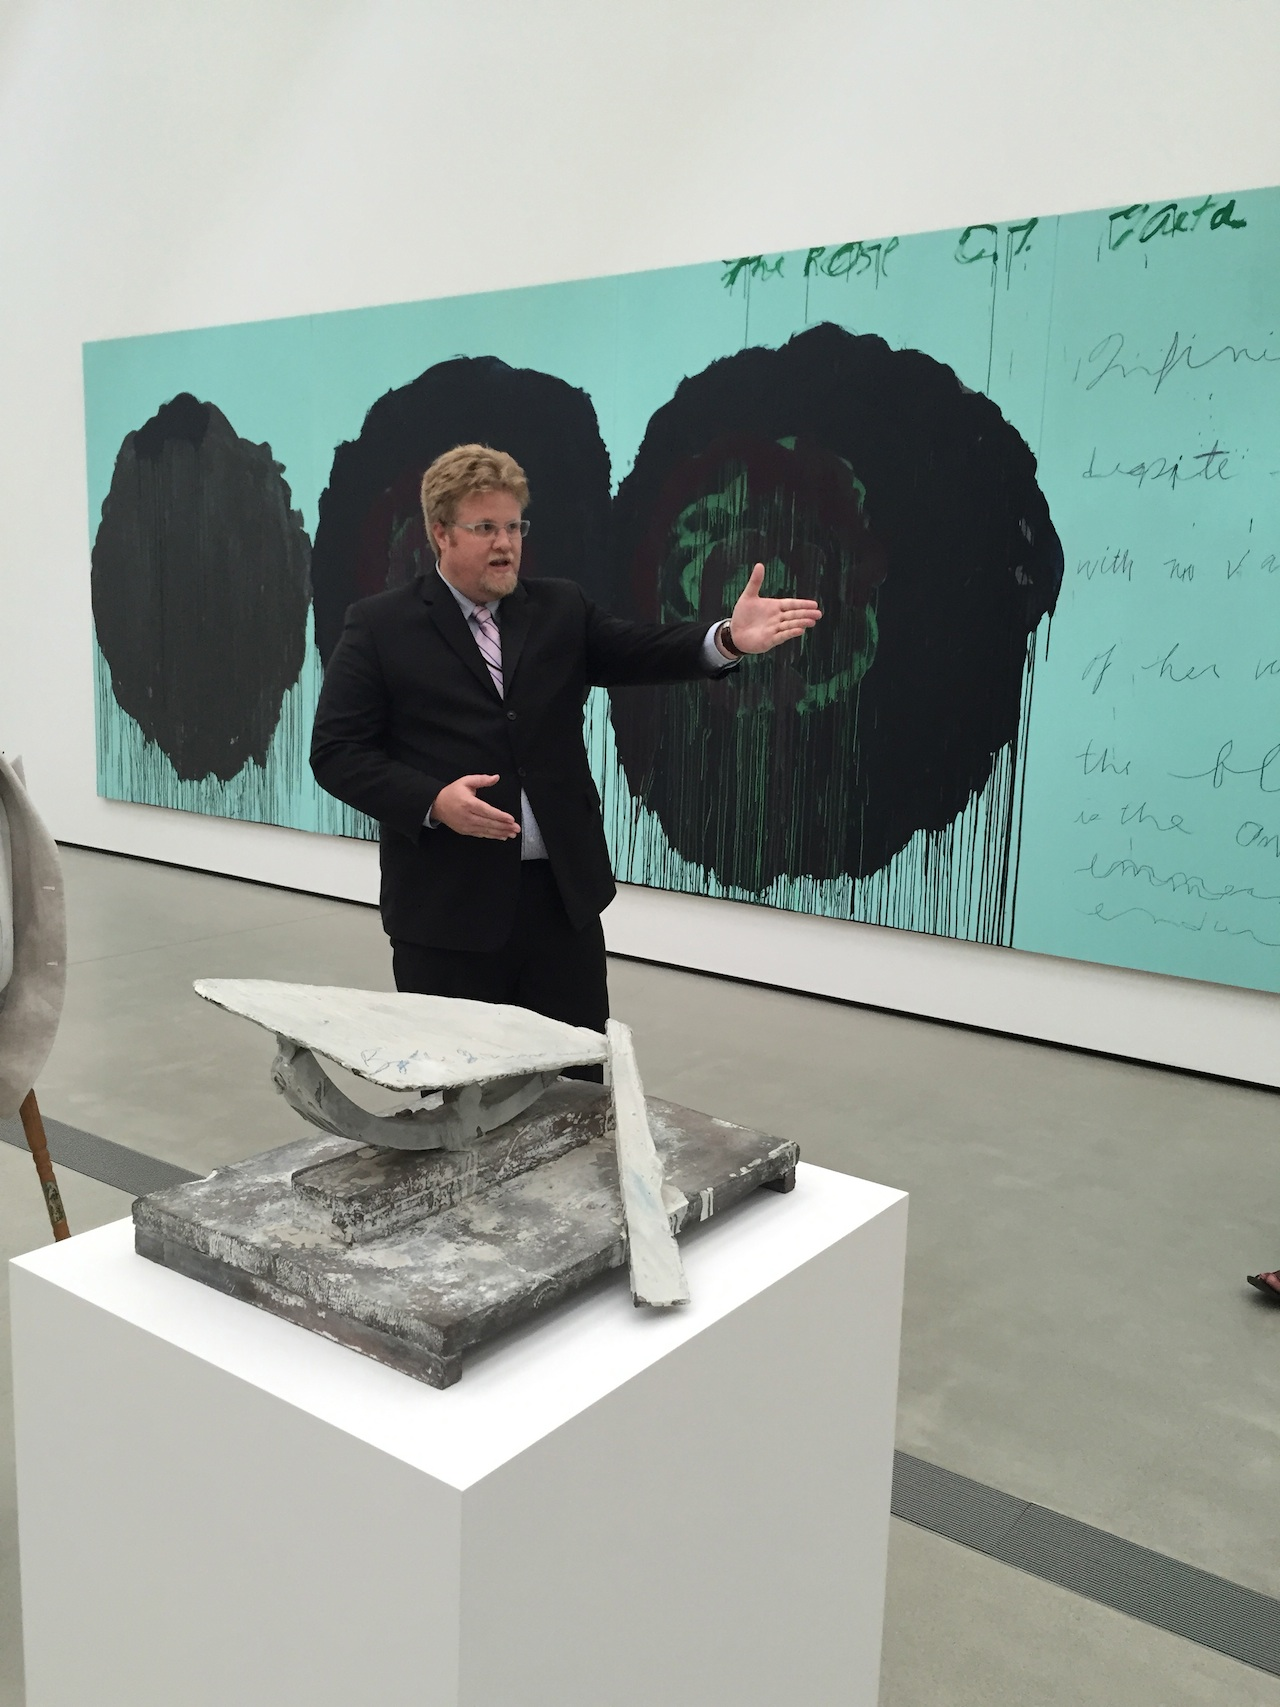 Assitant Curator Ed Schad discussing Cy Twombly's work.